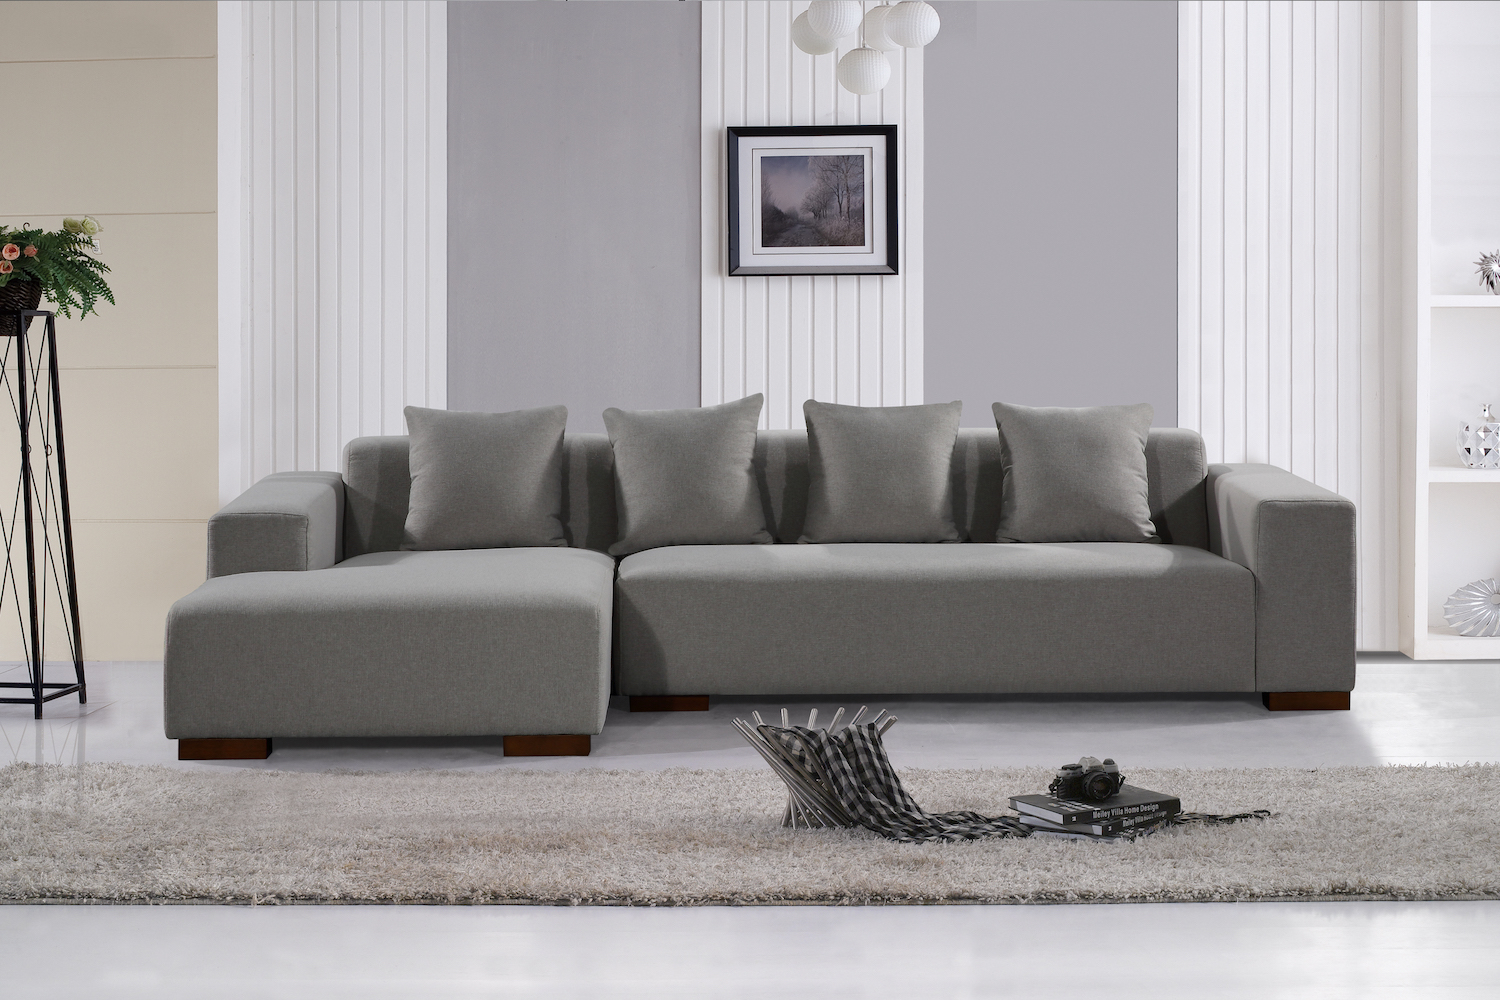 Deep Seating Sectional Sofa – Light Grey Fabric Throughout Noa Sectional Sofas With Ottoman Gray (View 14 of 15)